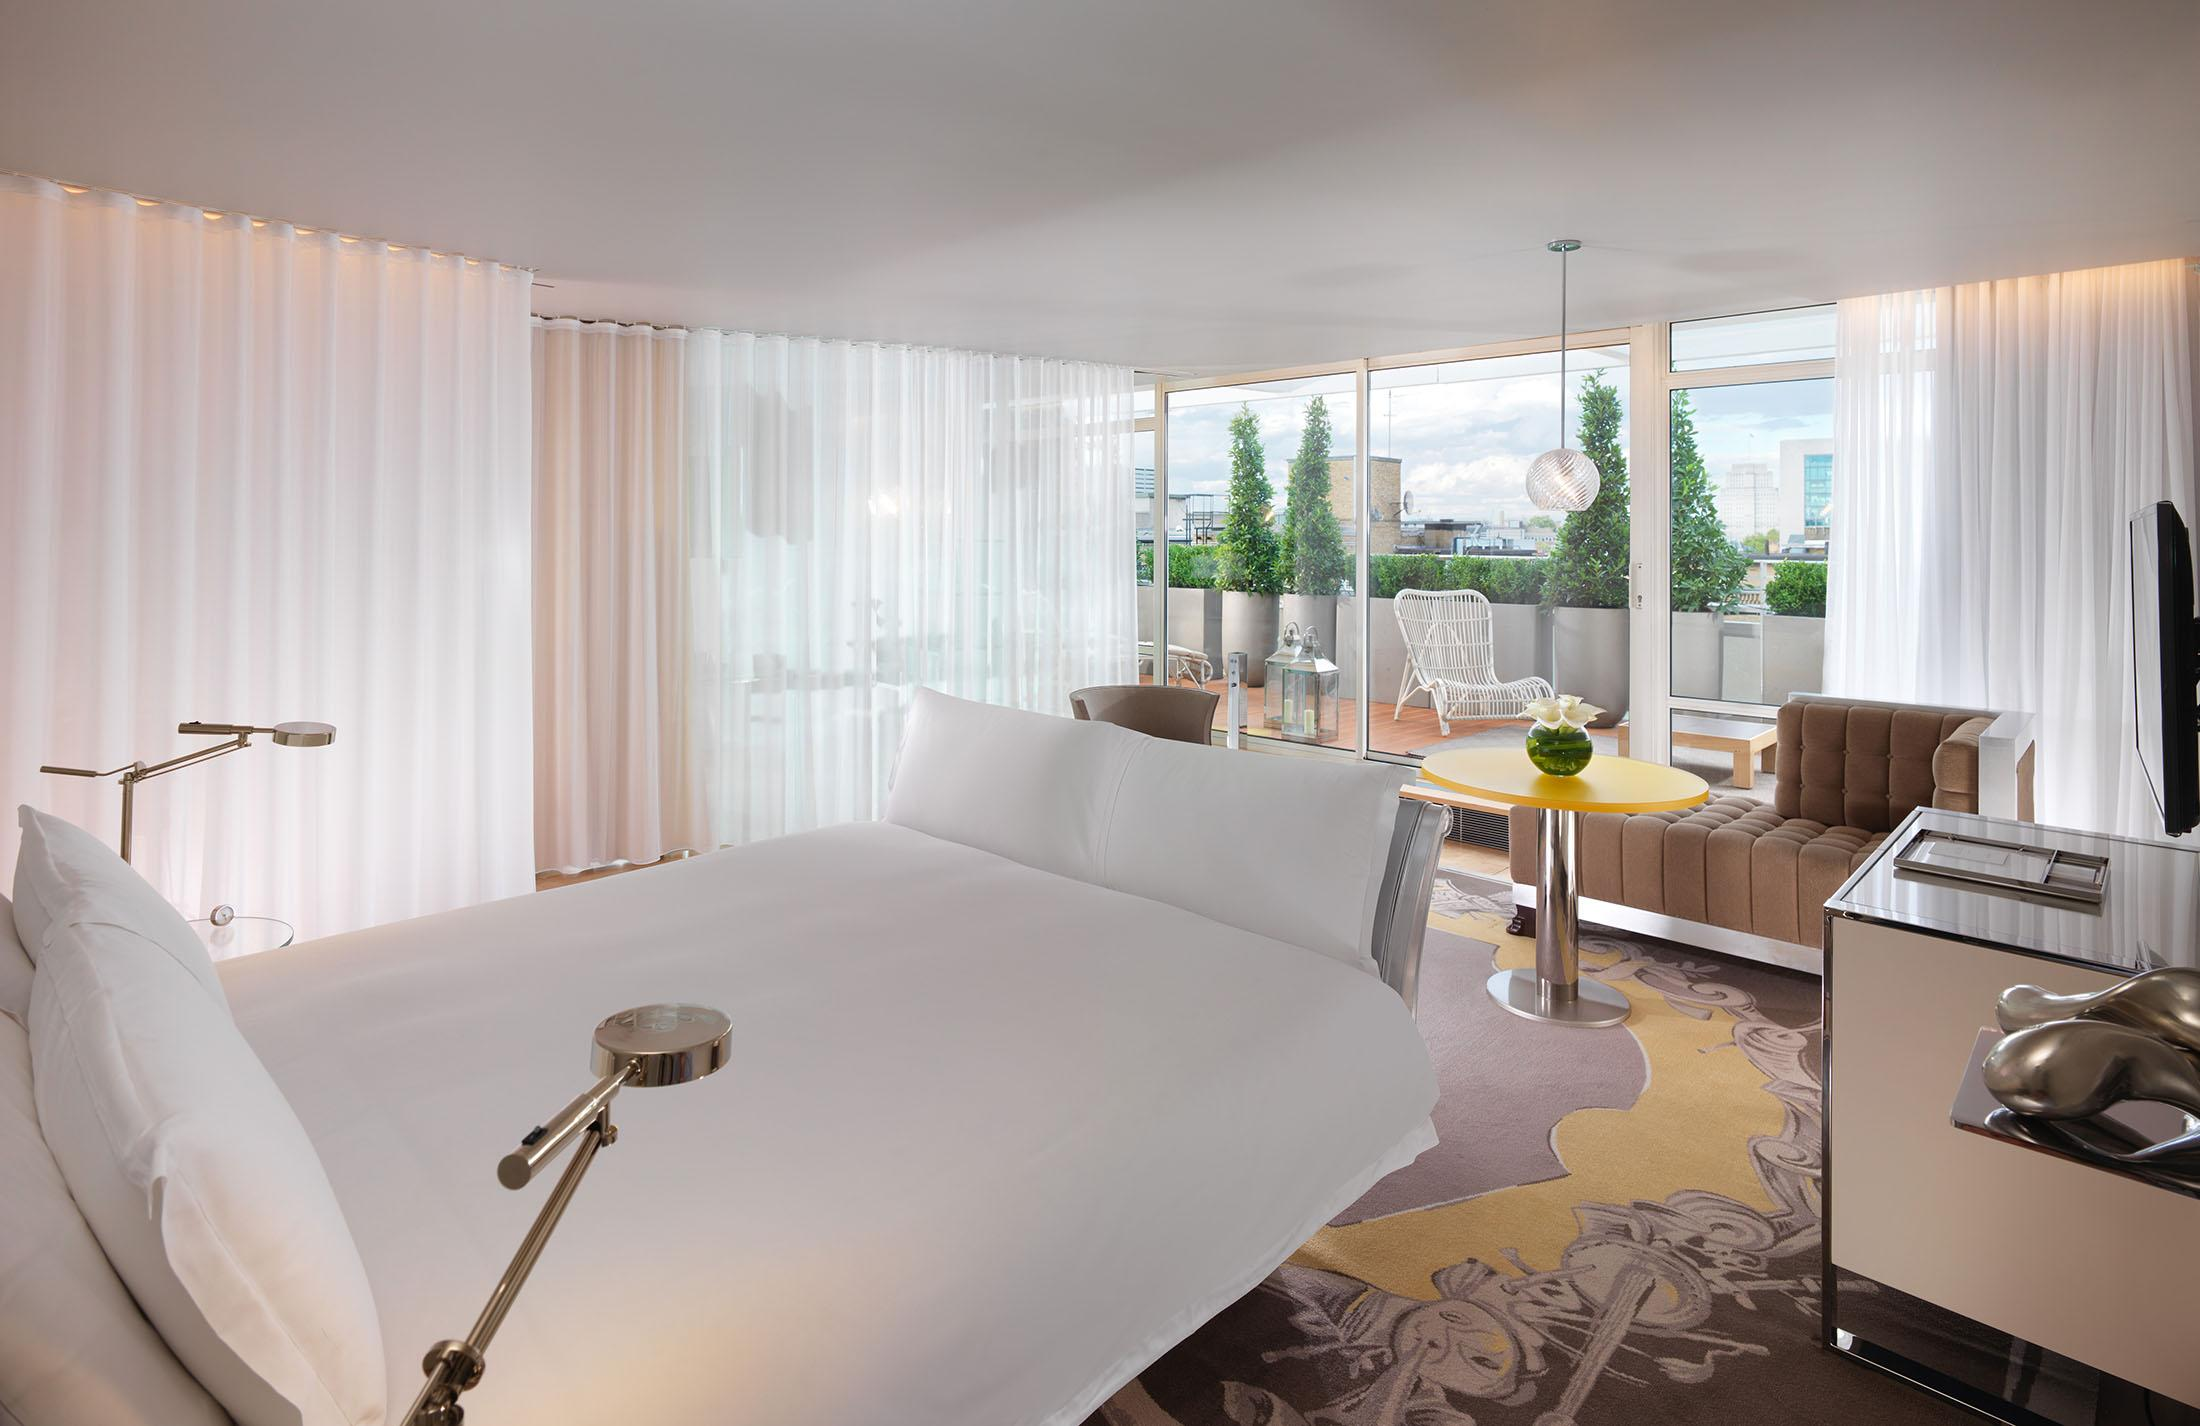 hotel room bed with white linens and terrace